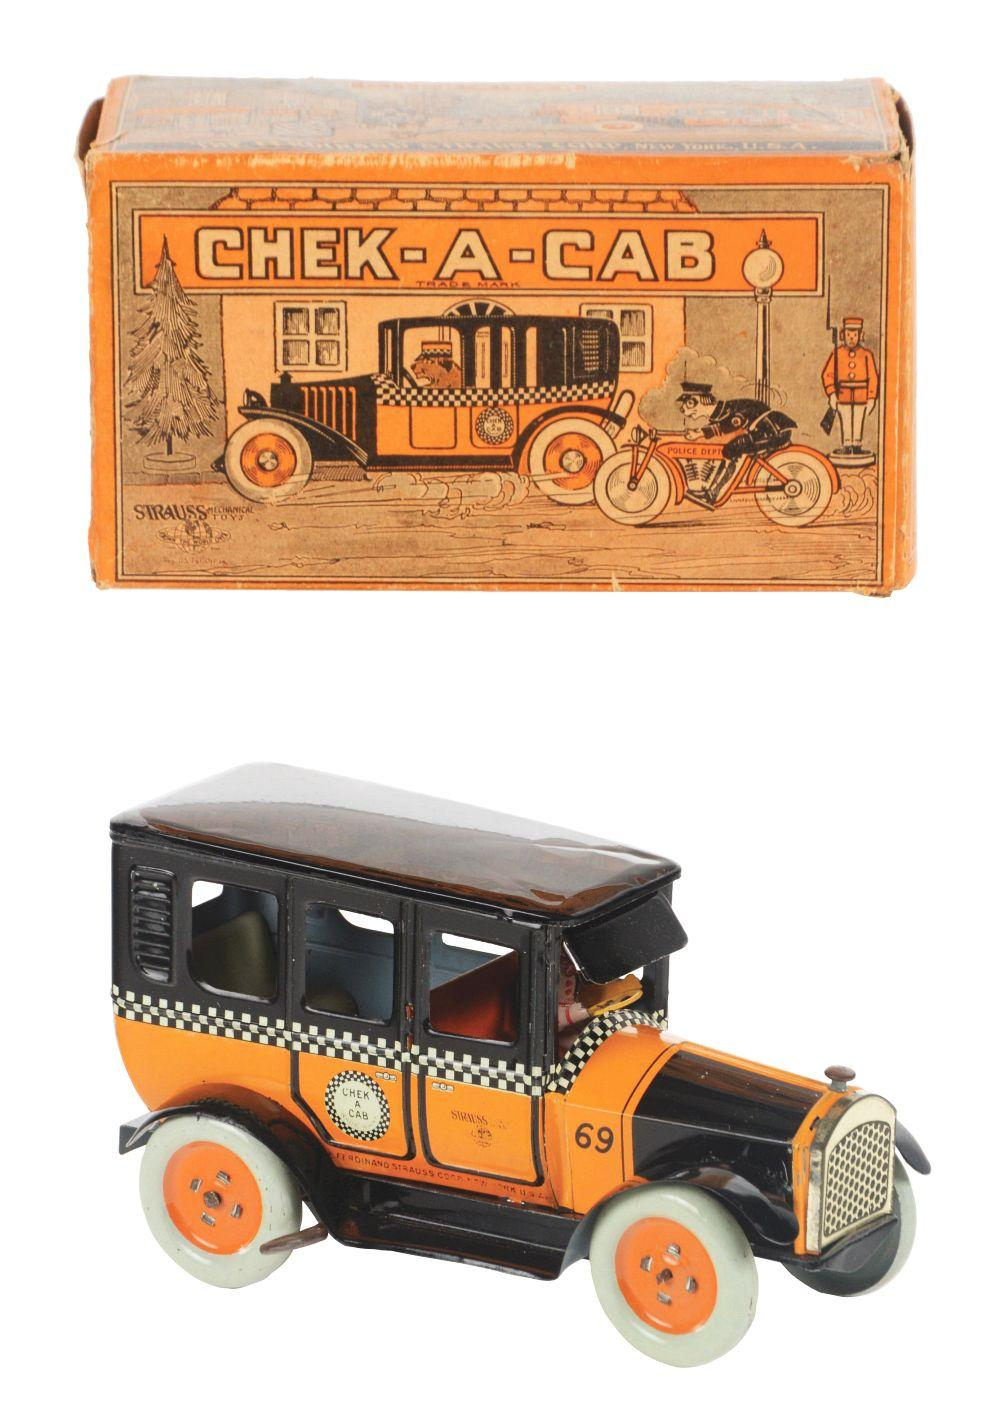 Lot 2257: Strauss Tin-Litho Wind-Up Check-A-Cab.